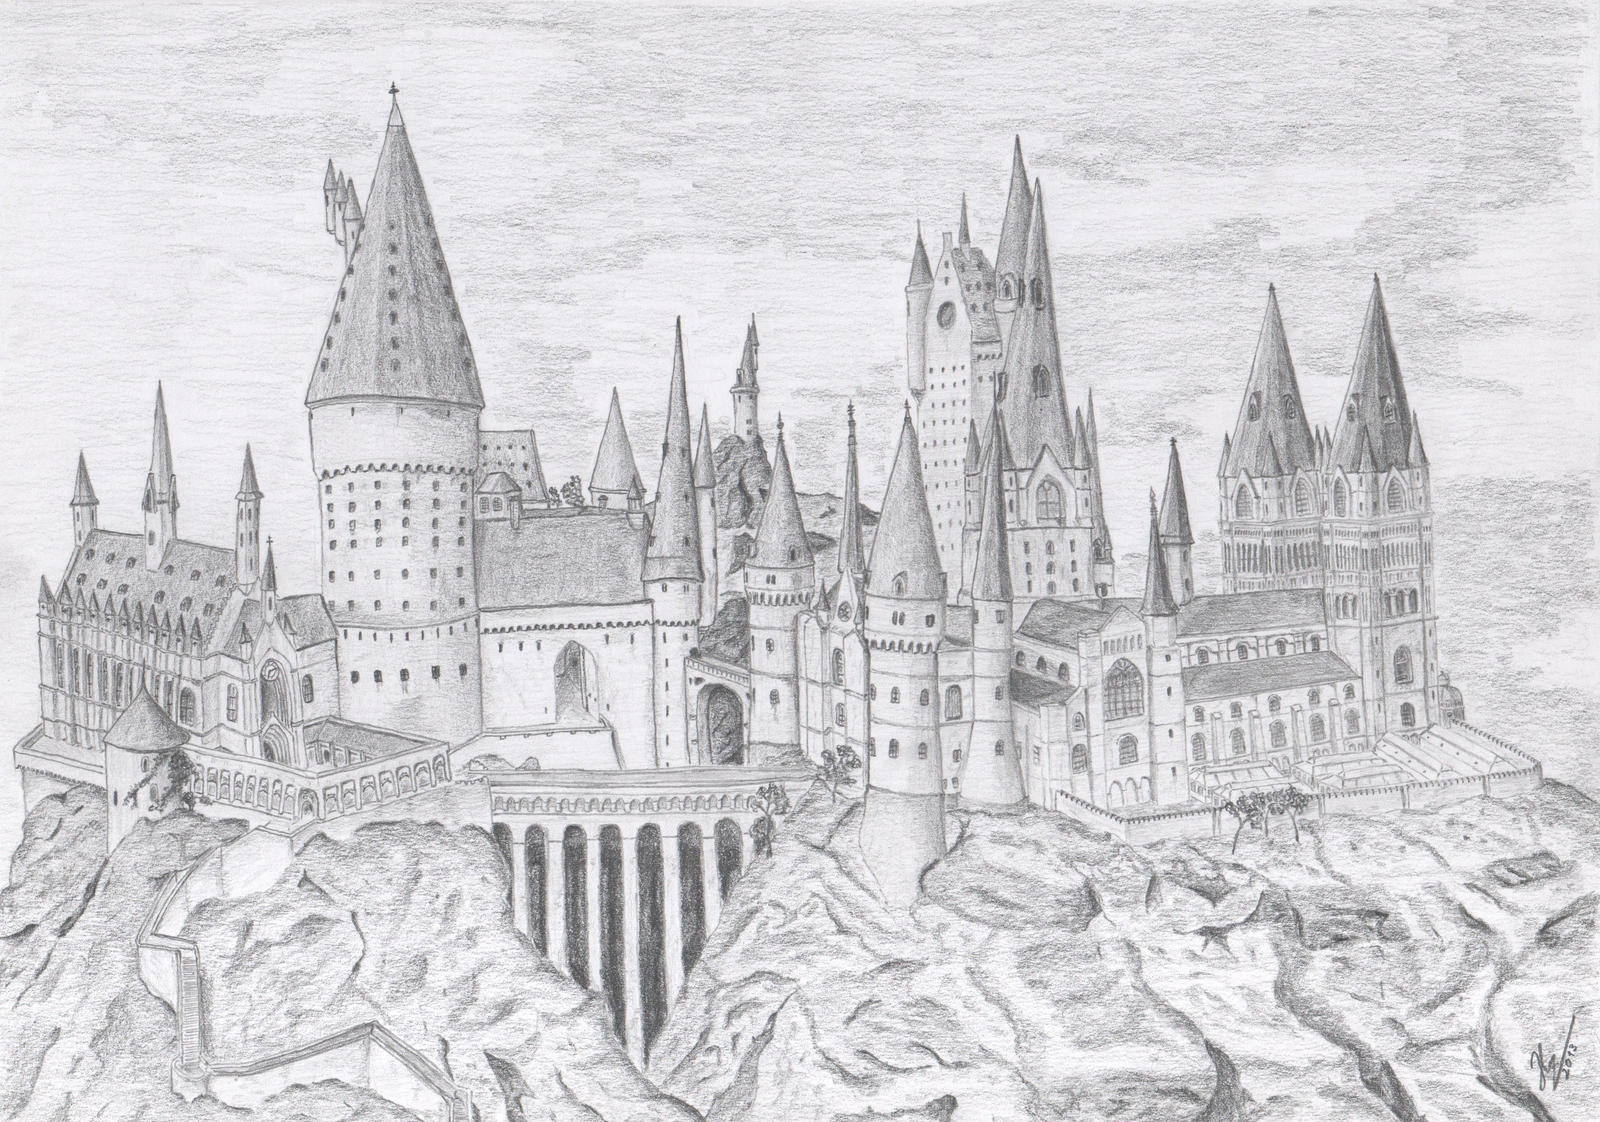 Hogwarts Castle By Skyicok On DeviantArt